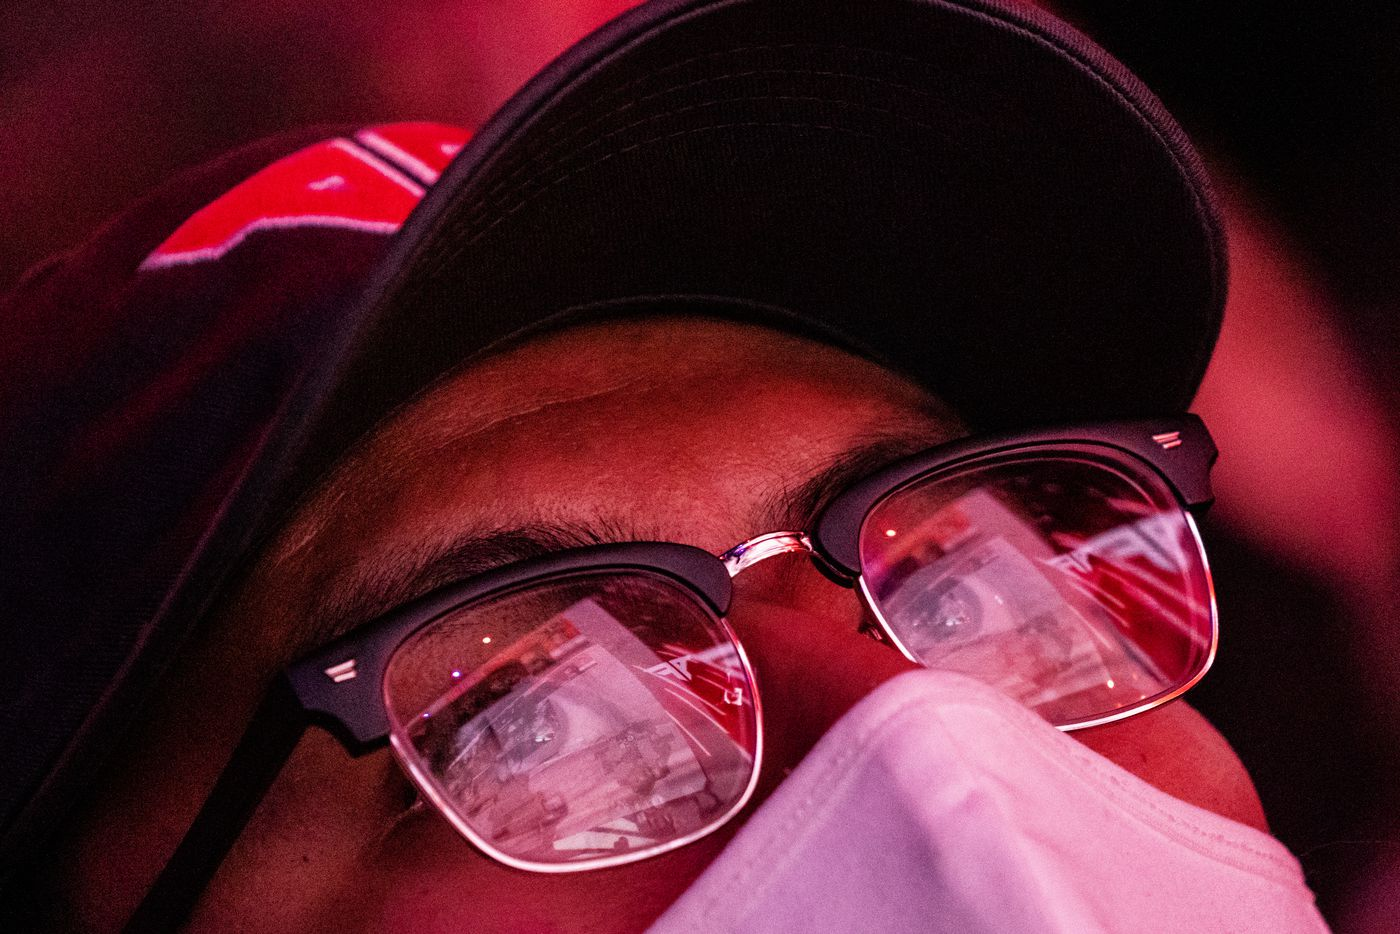 An Atlanta FaZe fan has the competition reflect in his glasses as he looks on during the Call of Duty league playoffs championship round at the Galen Center on Sunday, August 22, 2021 in Los Angeles, California. The Atlanta FaZe beat the Toronto Ultra 5 - 3. (Justin L. Stewart/Special Contributor)